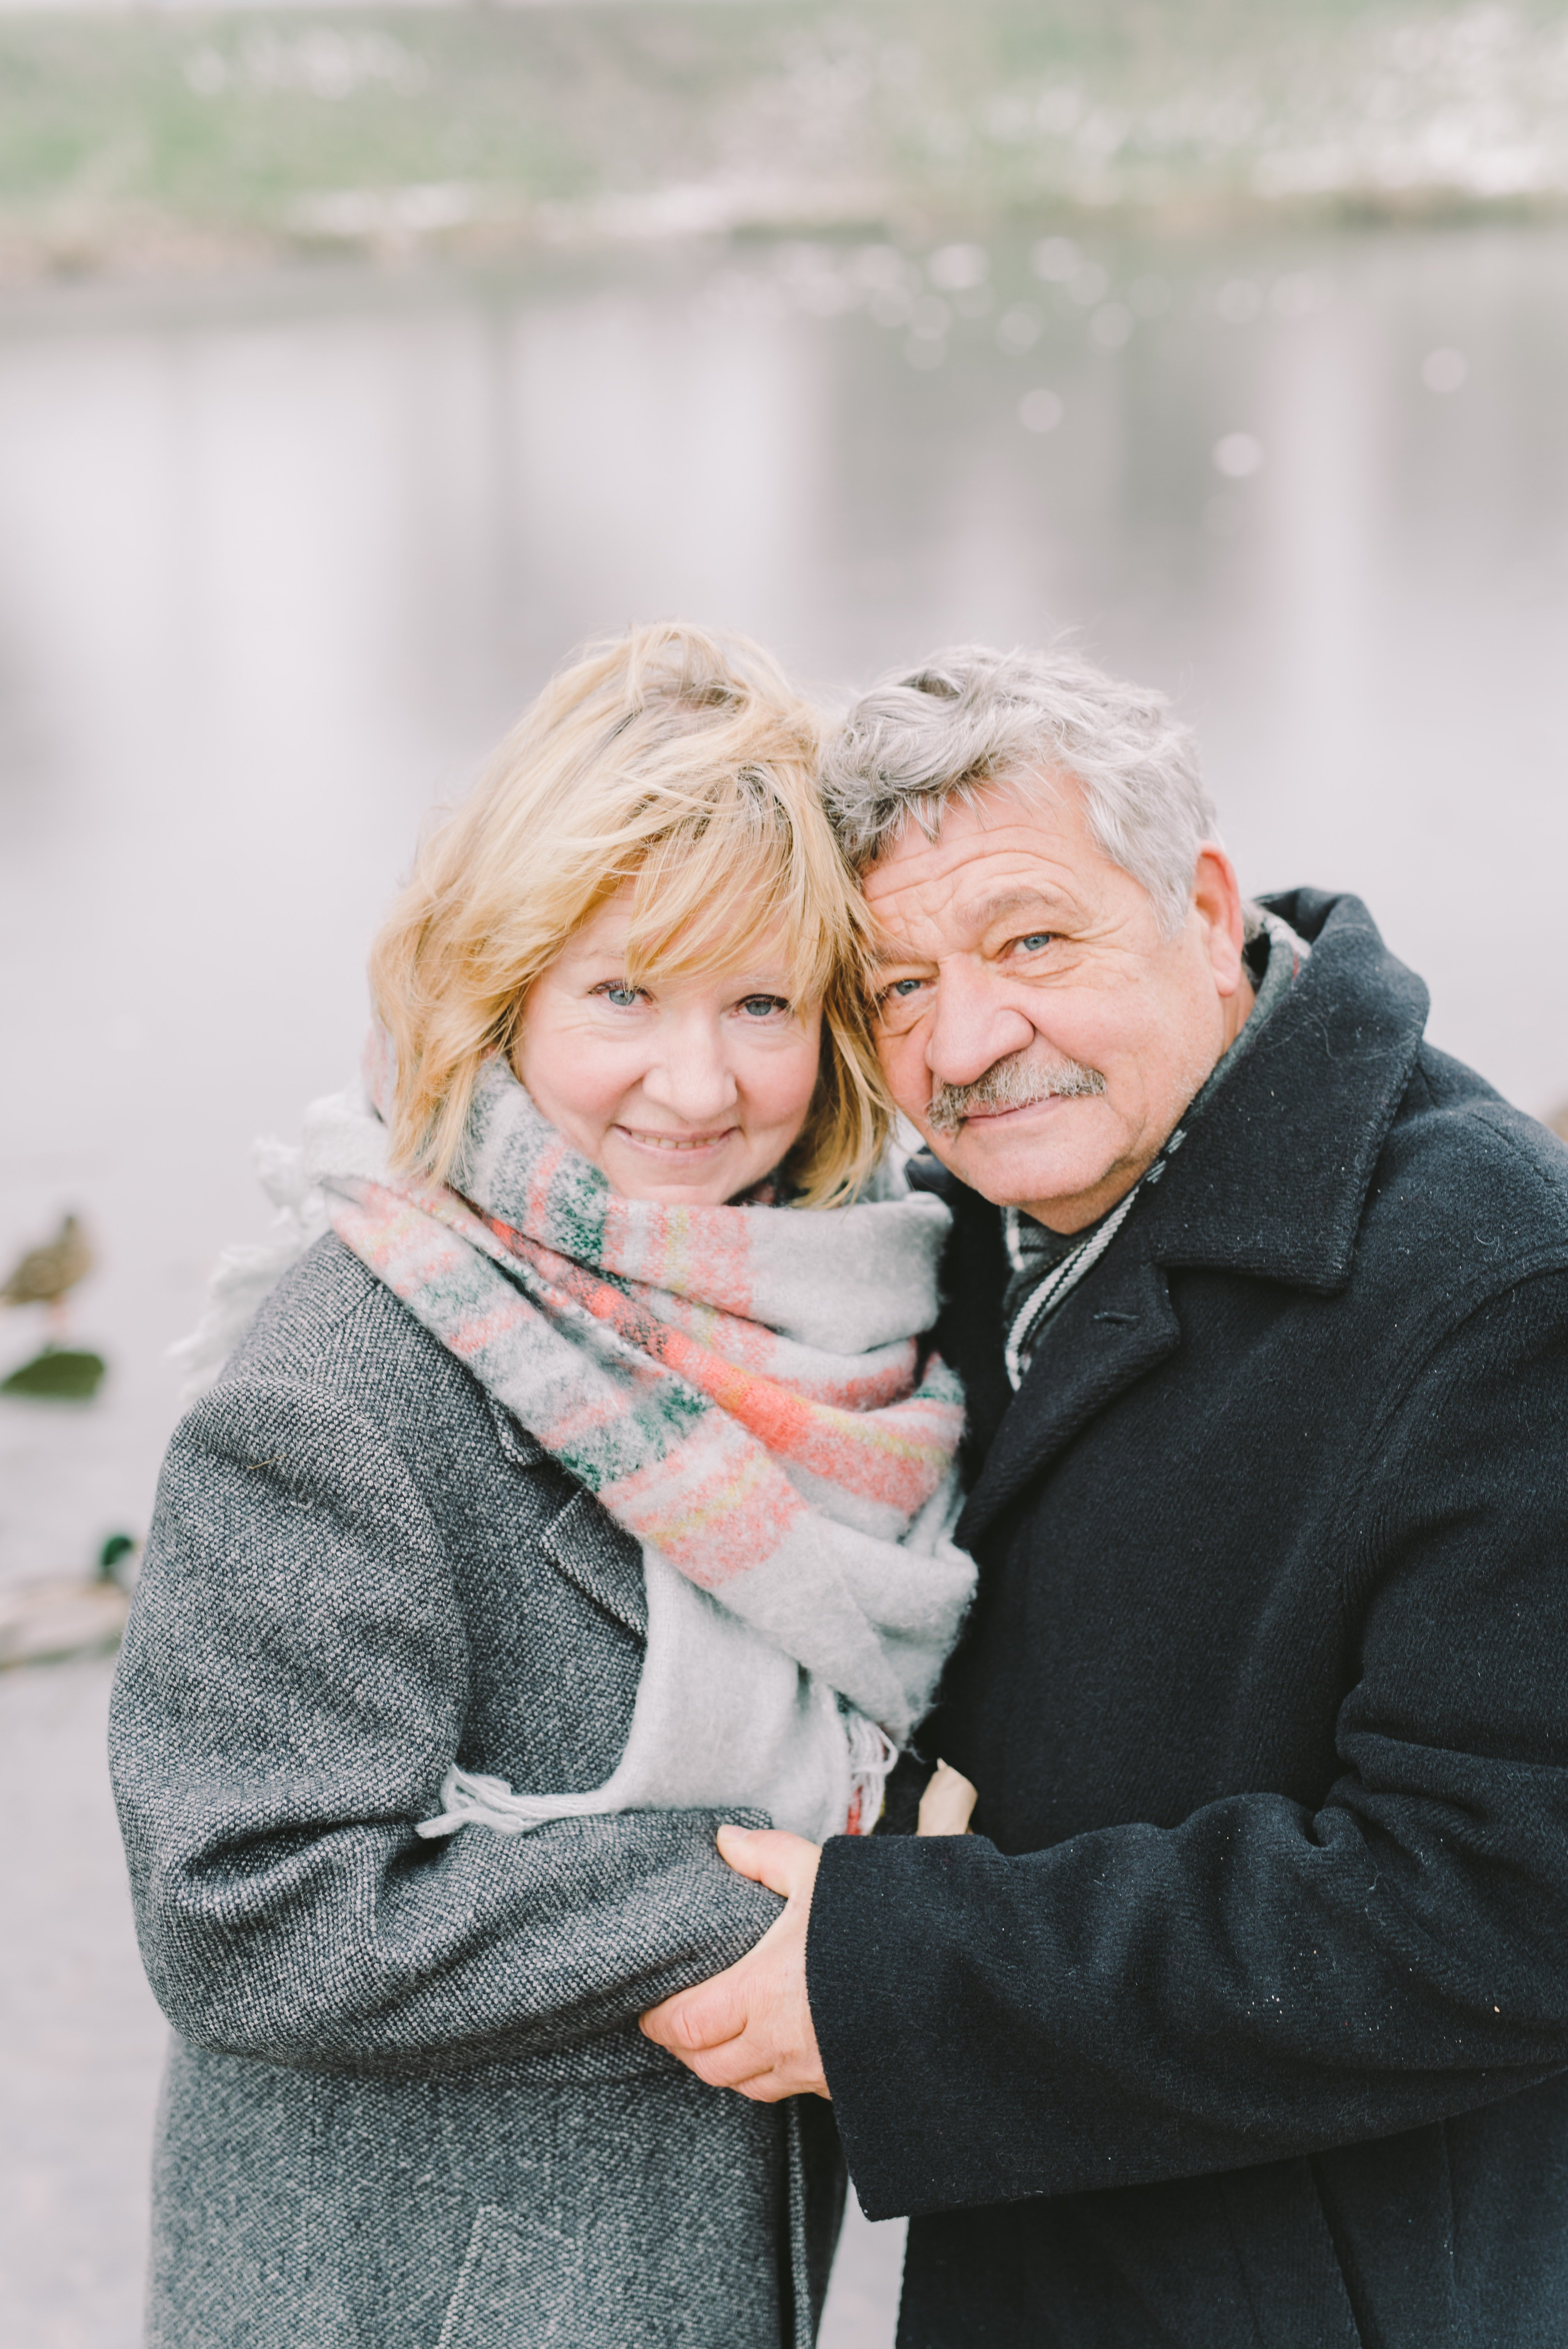 Thanks to Melissa, her parents reunited after several years | Photo: Pexels